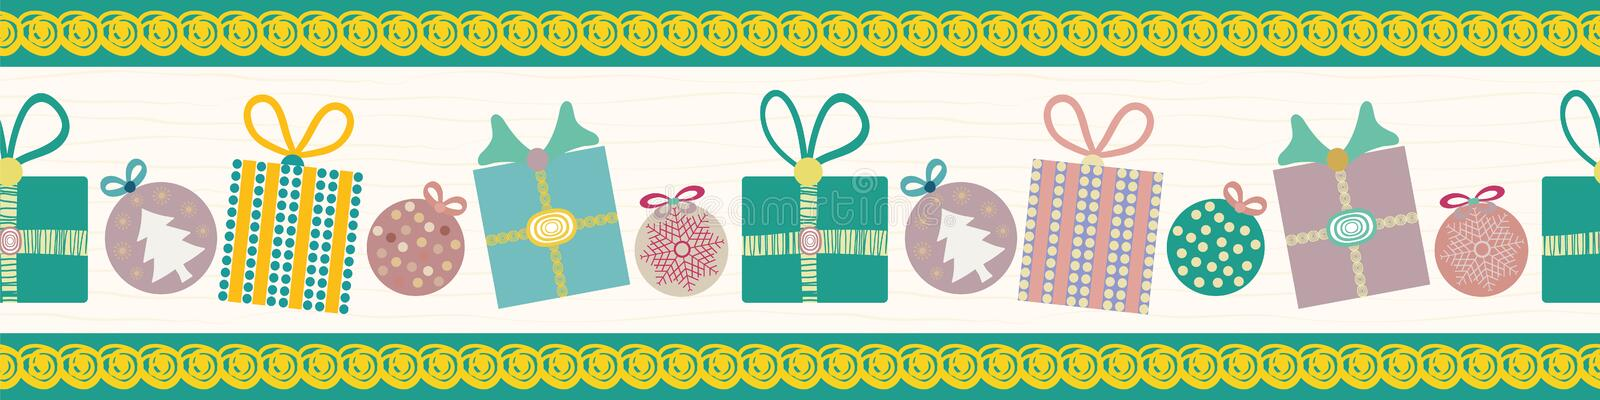 Cheerful Christmas border with hand drawn teal and dusky pink presents and baubles Seamless vector pattern on white vector illustration